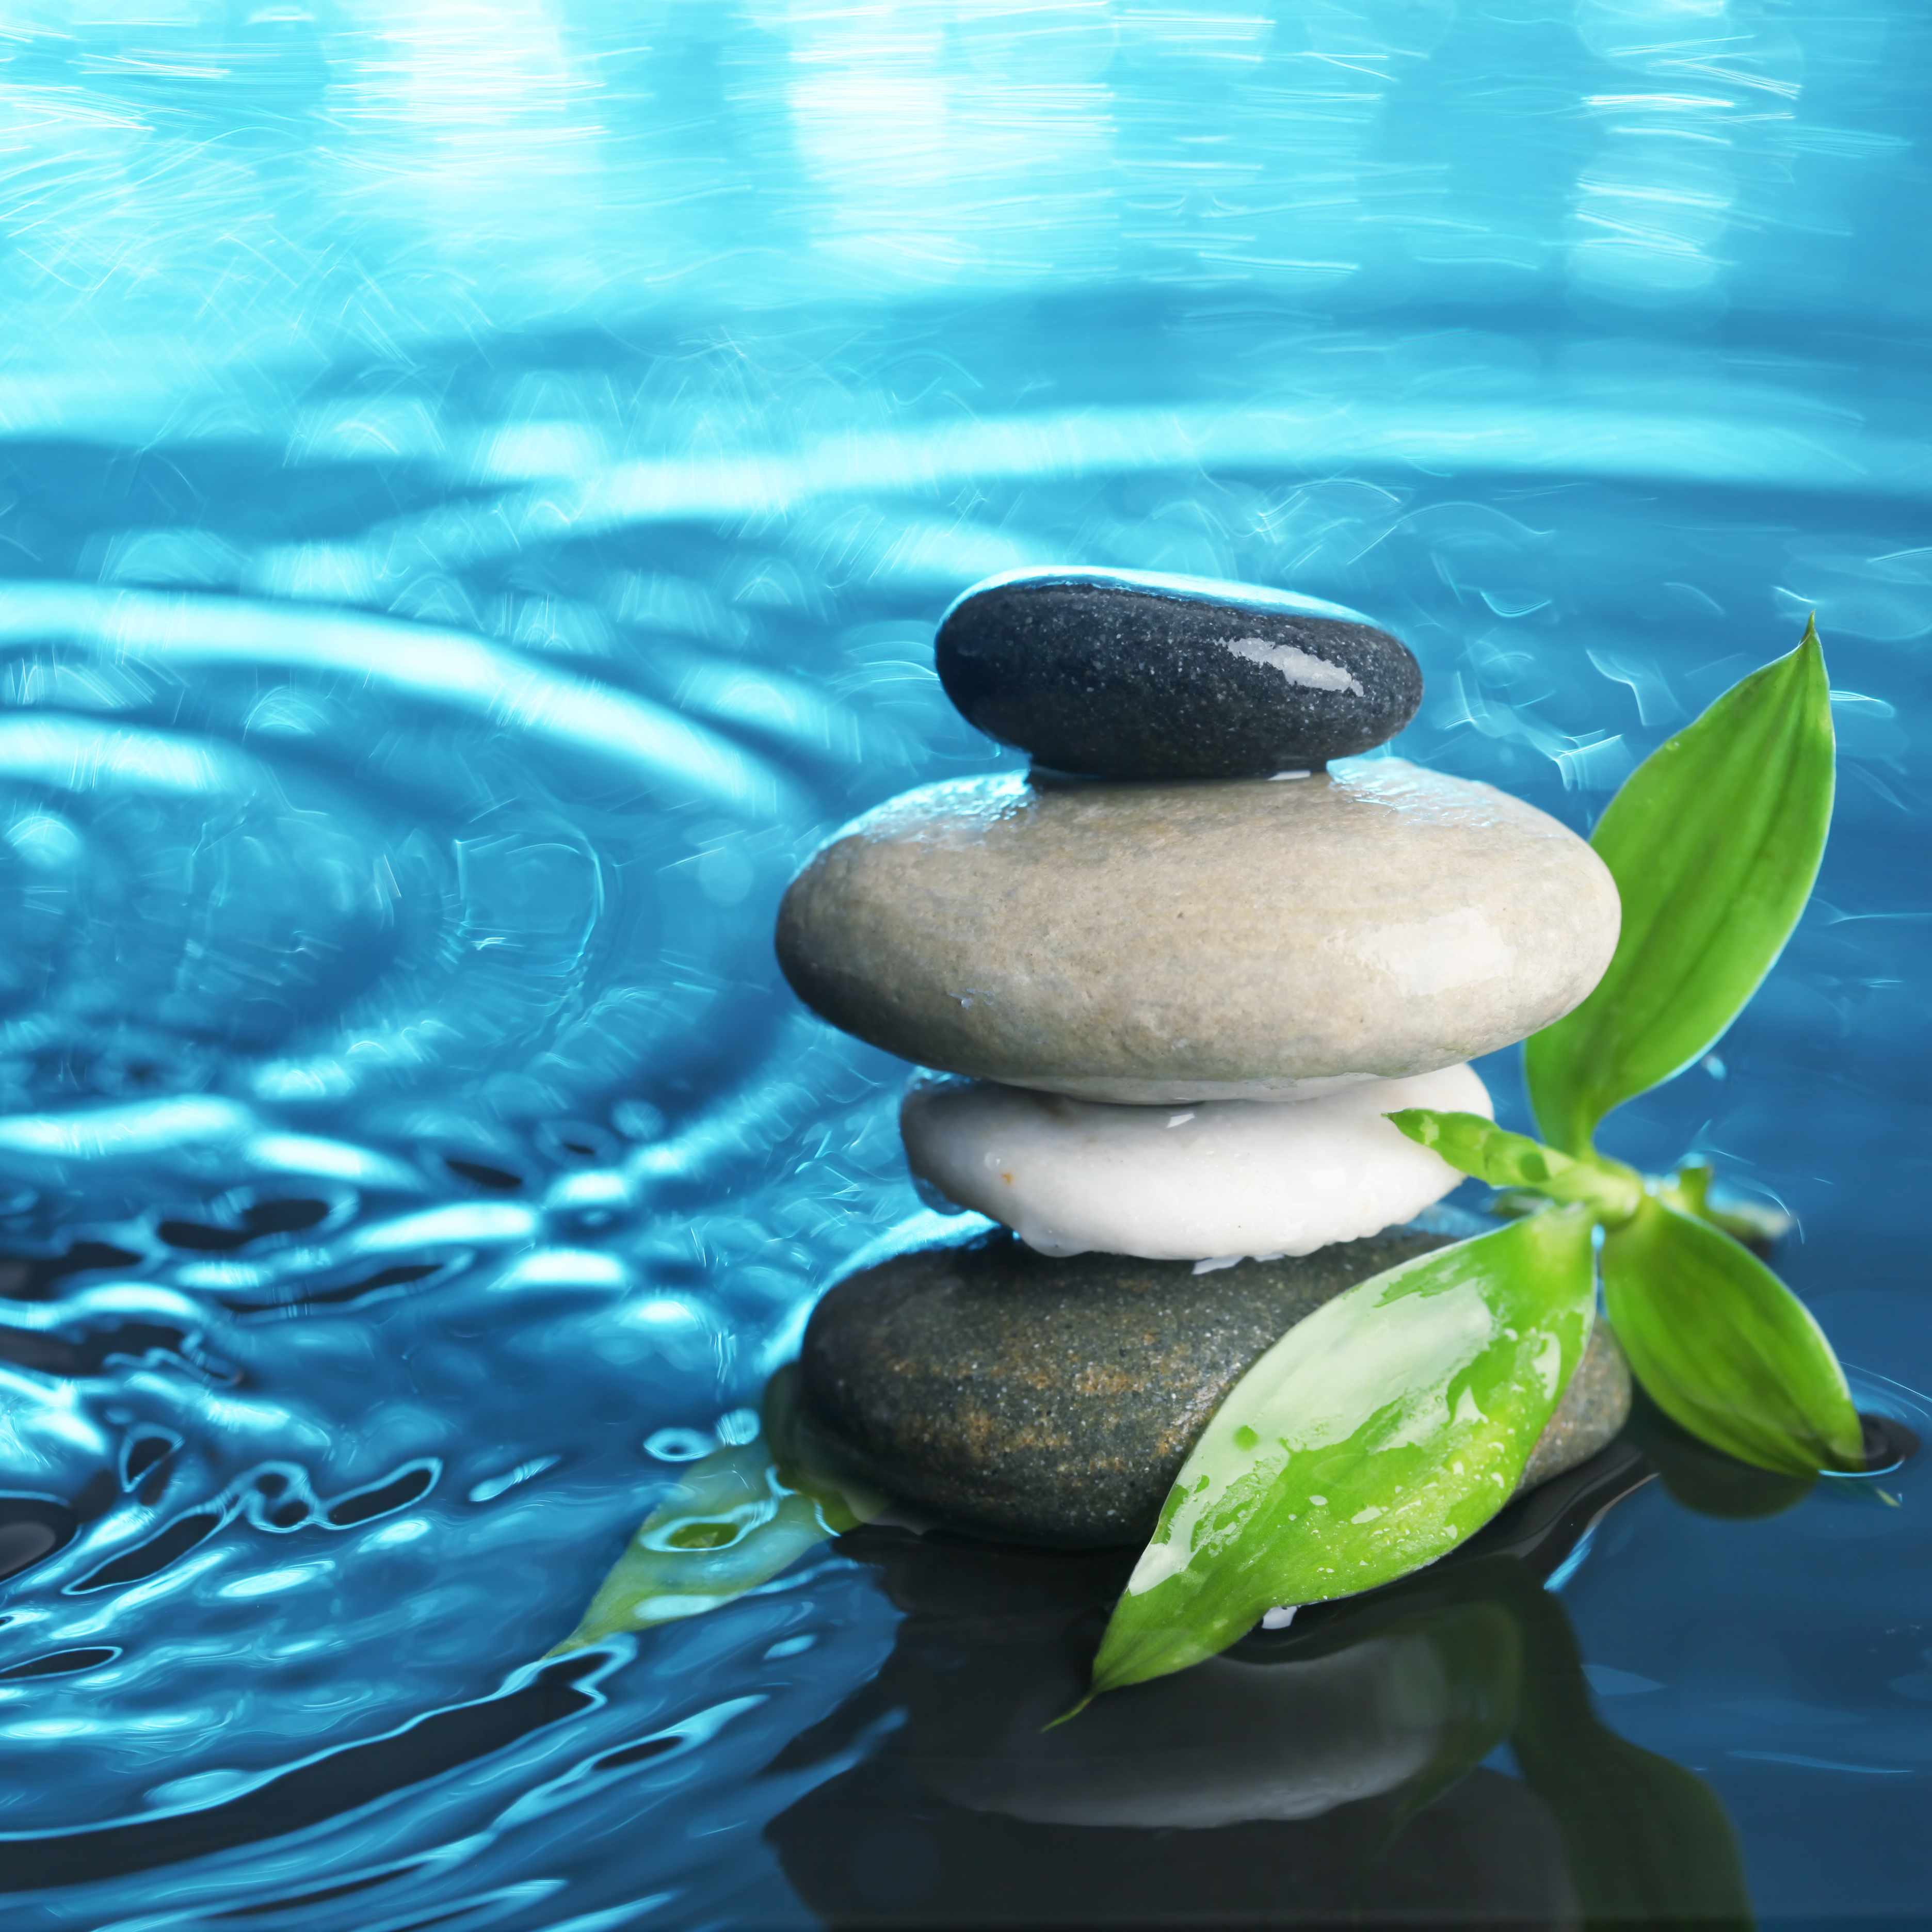 a stack of smooth, flat stones and a sprig of bamboo in a shallow pool of water with ripples on the surface